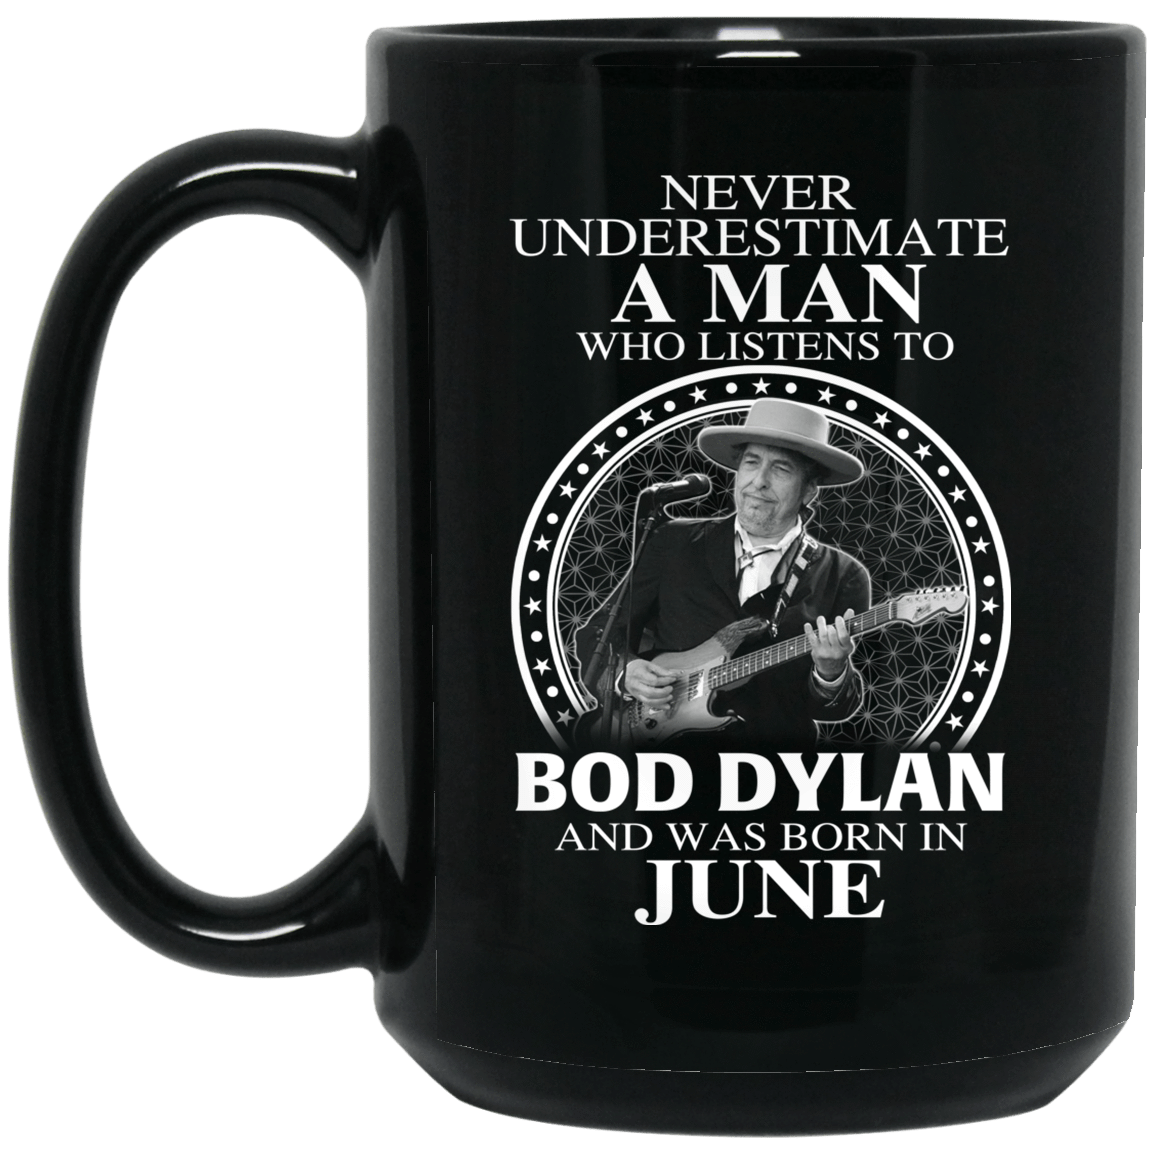 A Man Who Listens To Bob Dylan And Was Born In June Mug 1066-10182-76154694-49311 - Tee Ript